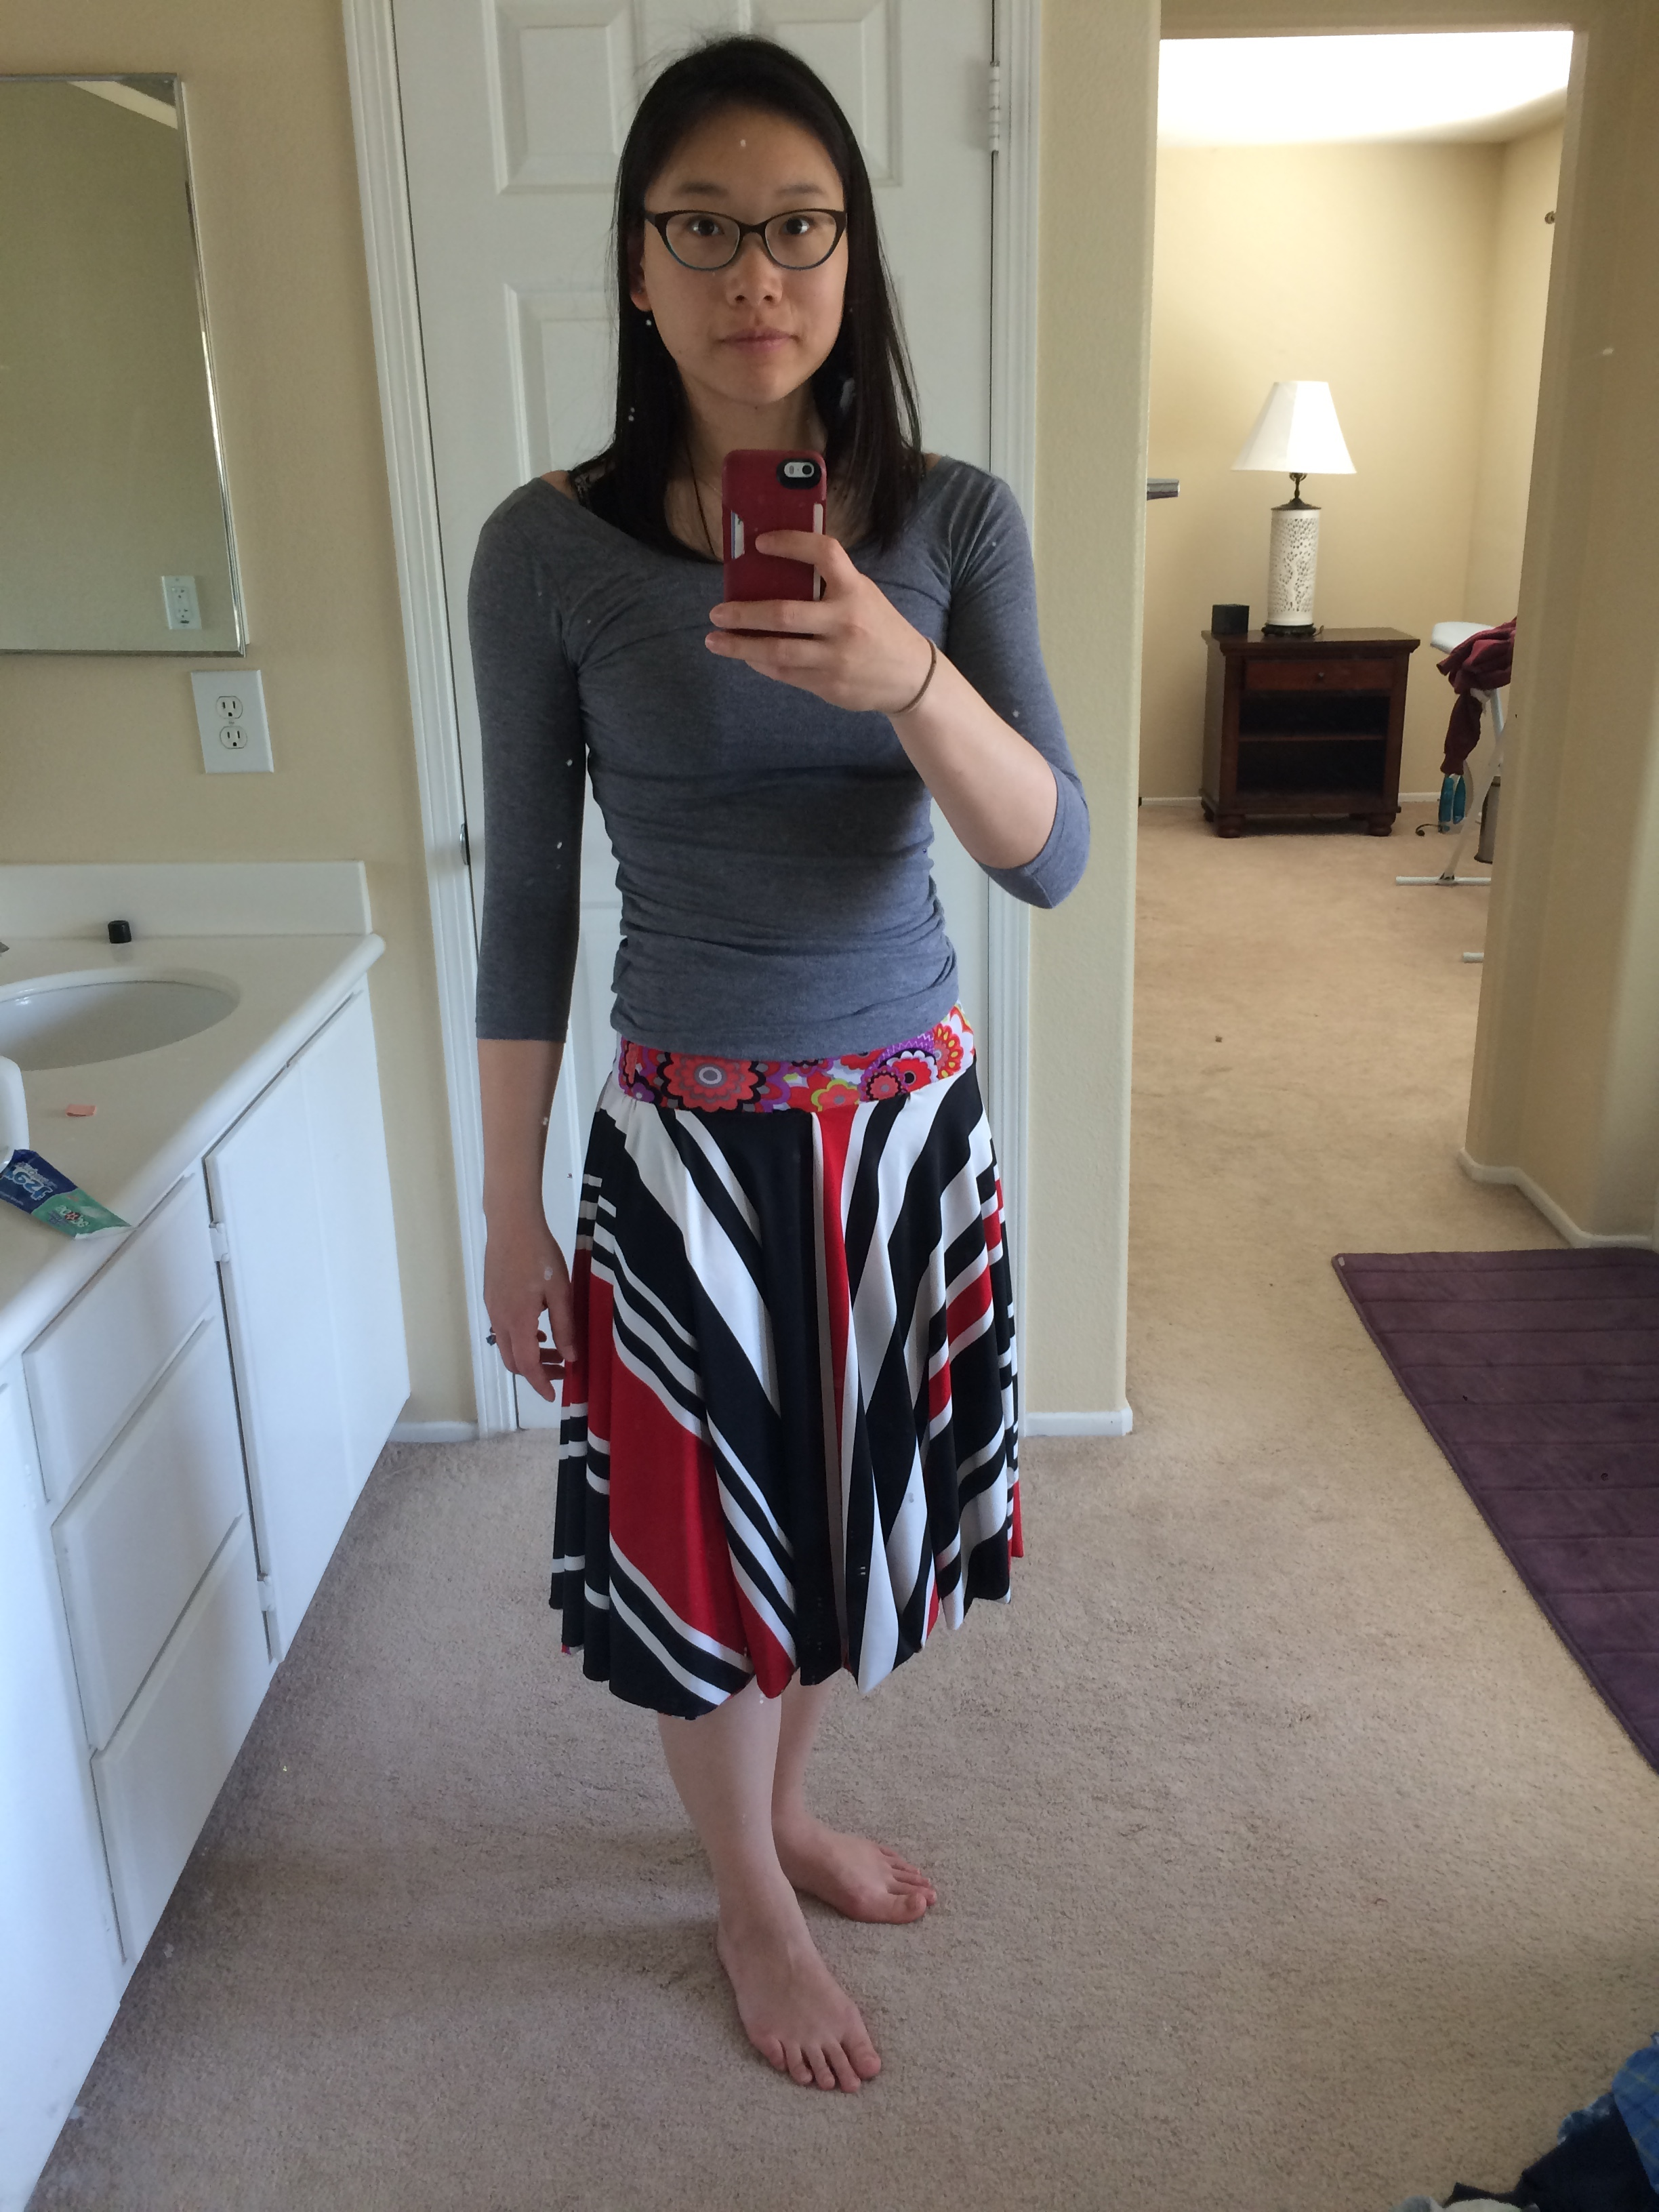 Black, red, and white striped side of the skirt with contrasting floral waistband